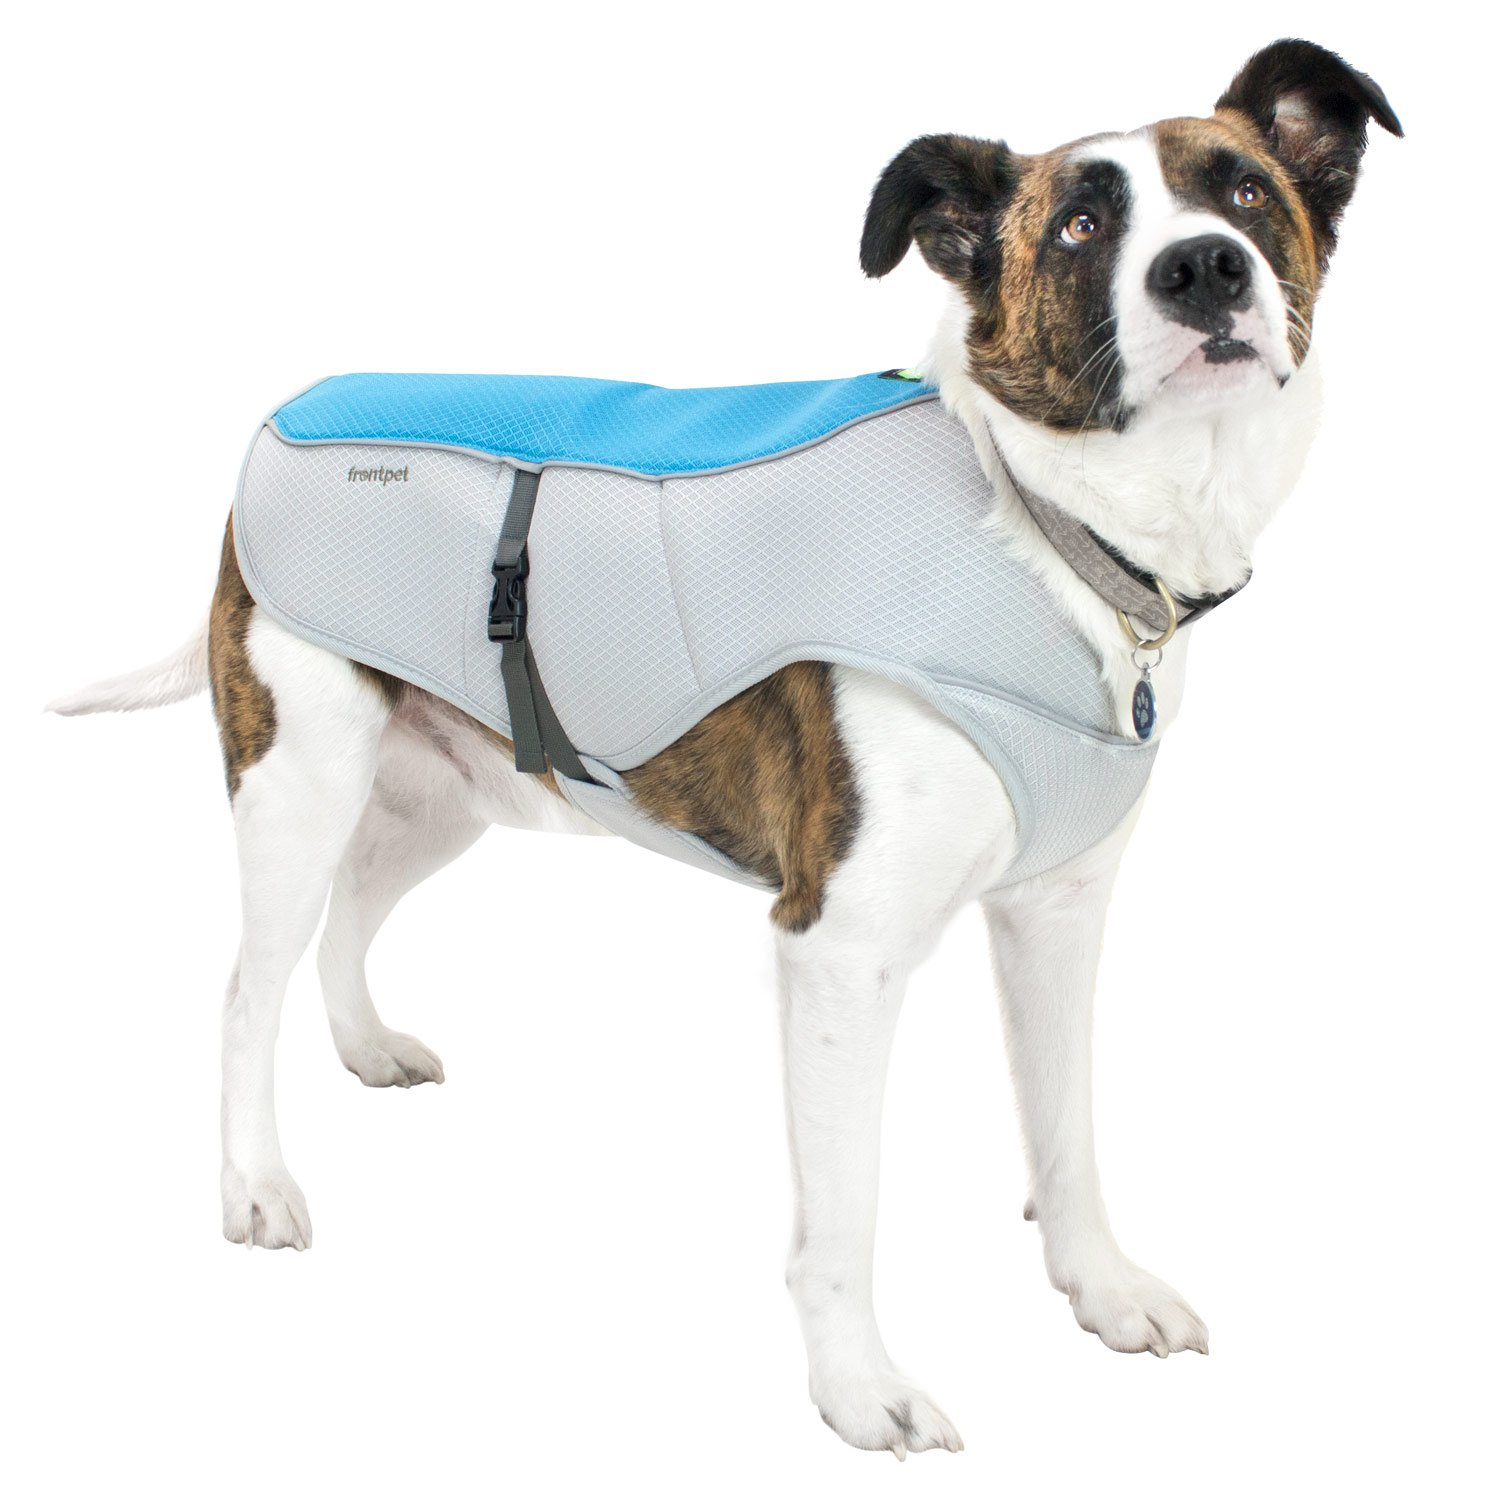 FrontPet Cooling Dog Vest With Adjustable Side Straps And Highly Visible Reflective Padding. Fits Most Medium and Large Breed Dogs!